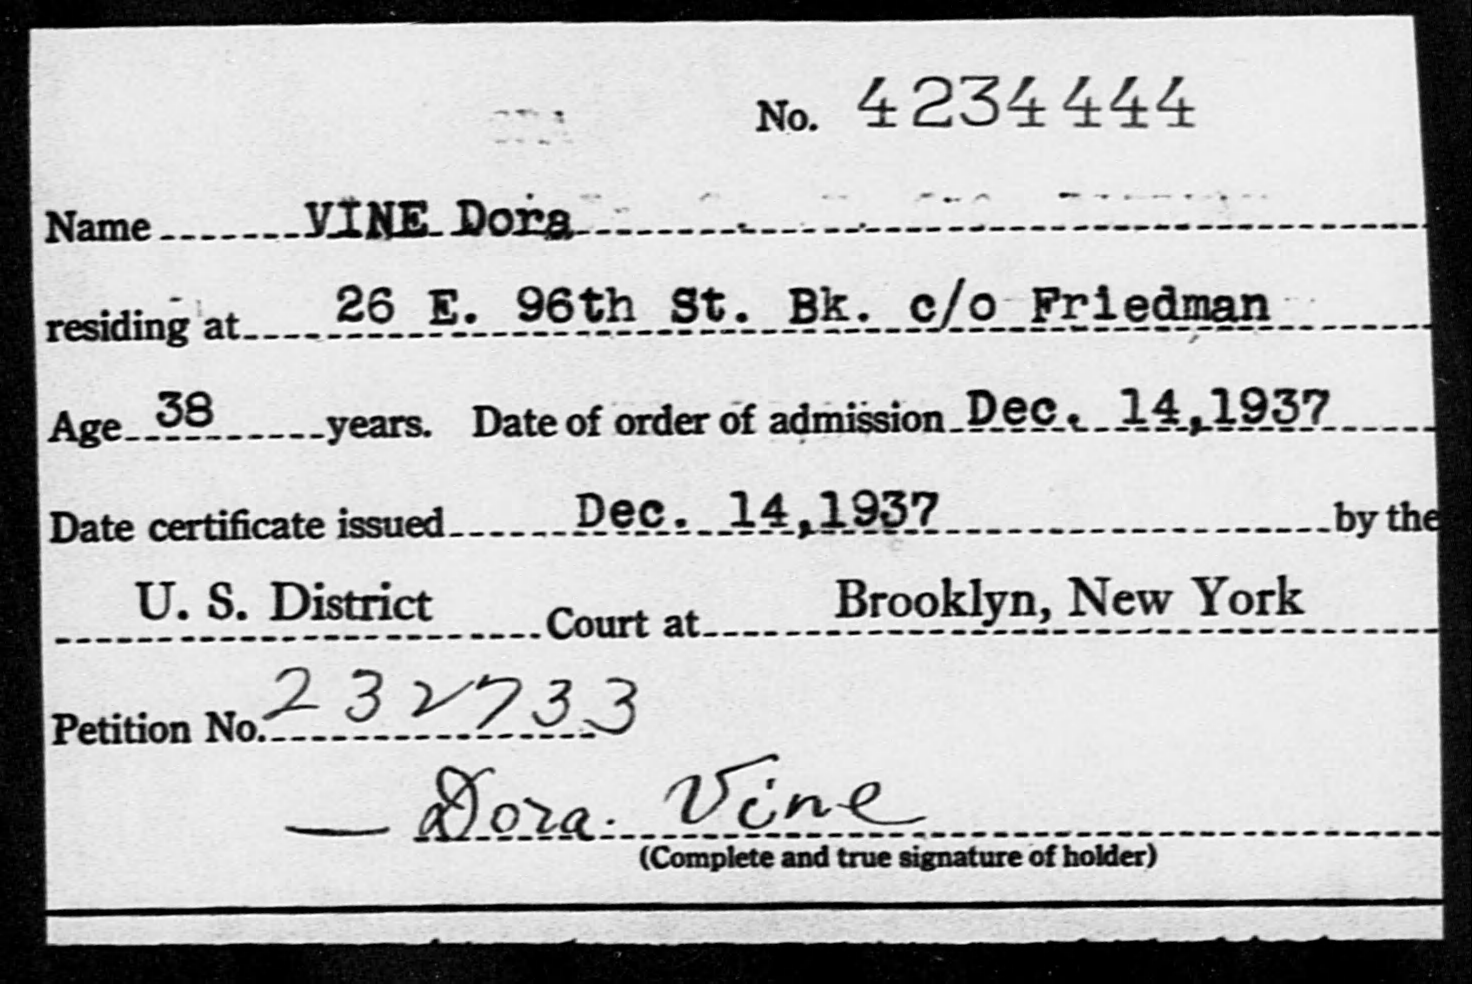 VINE Dora - Born: [BLANK], Naturalized: 1937